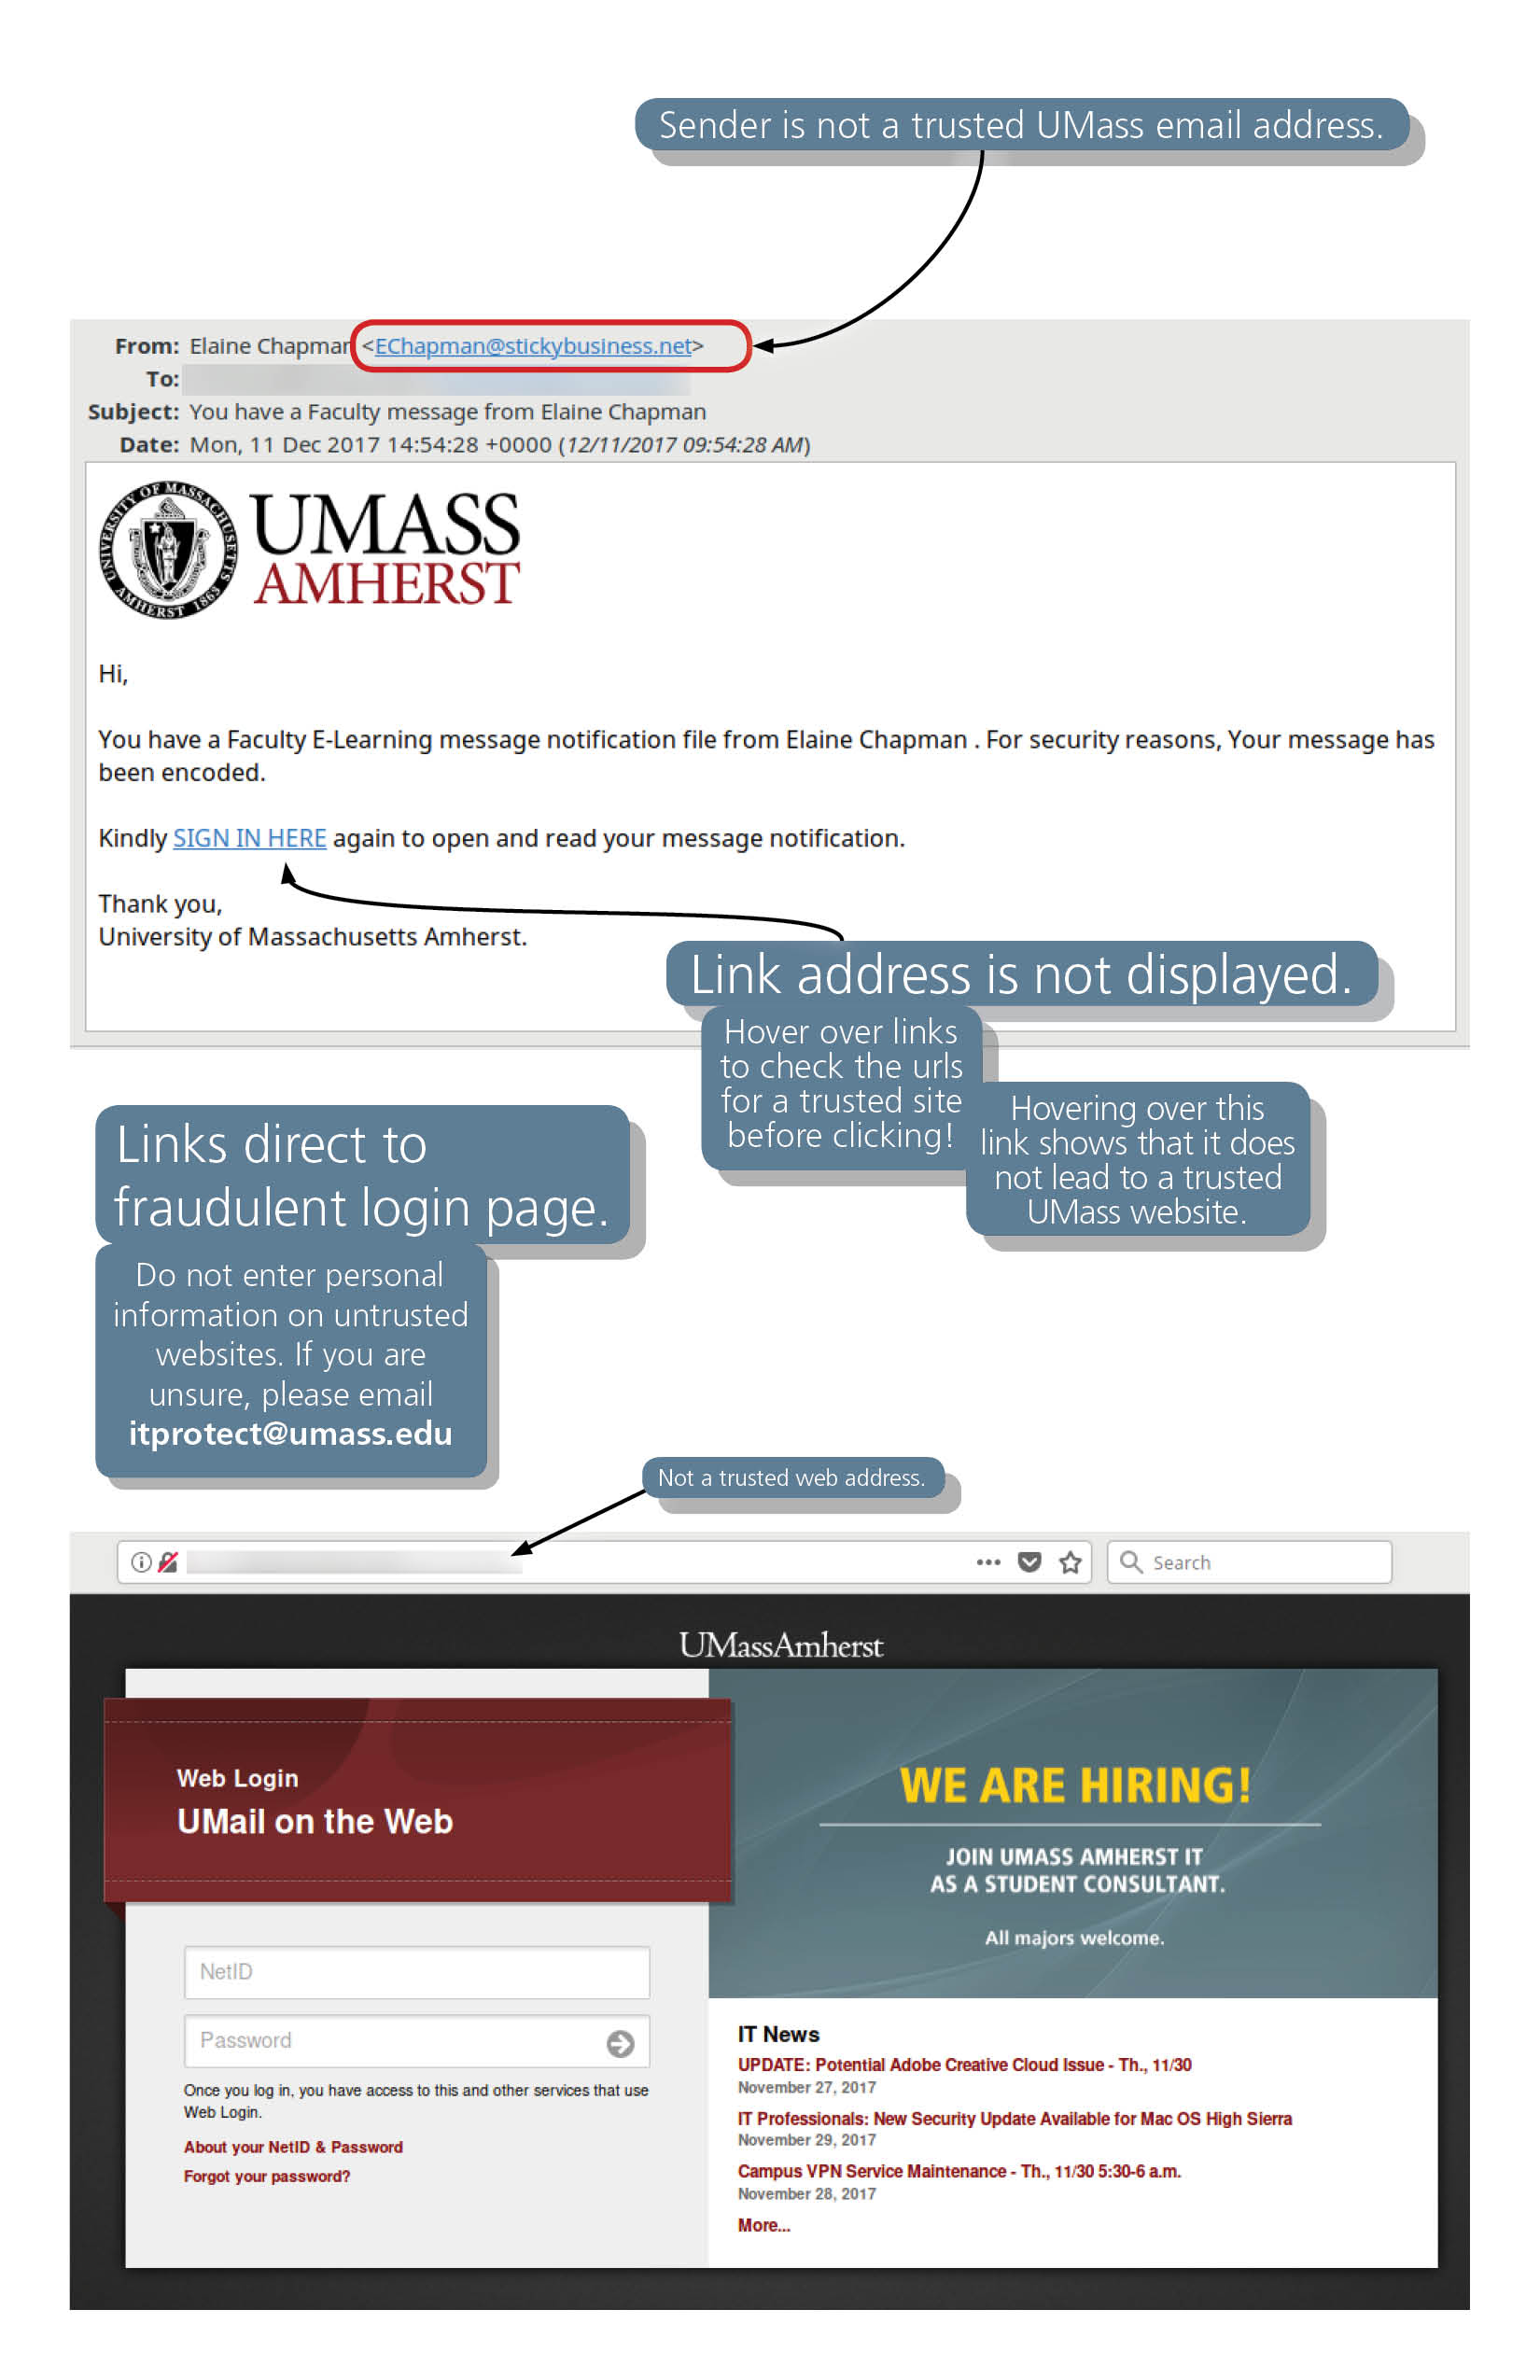 Phishing example showing an email which was not sent by a trusted UMass email address, despite containing UMass Amherst branding. The email message instructs the recipient to click a link which does not show its address. The link directs to a fake version of the UMass Amherst login page.